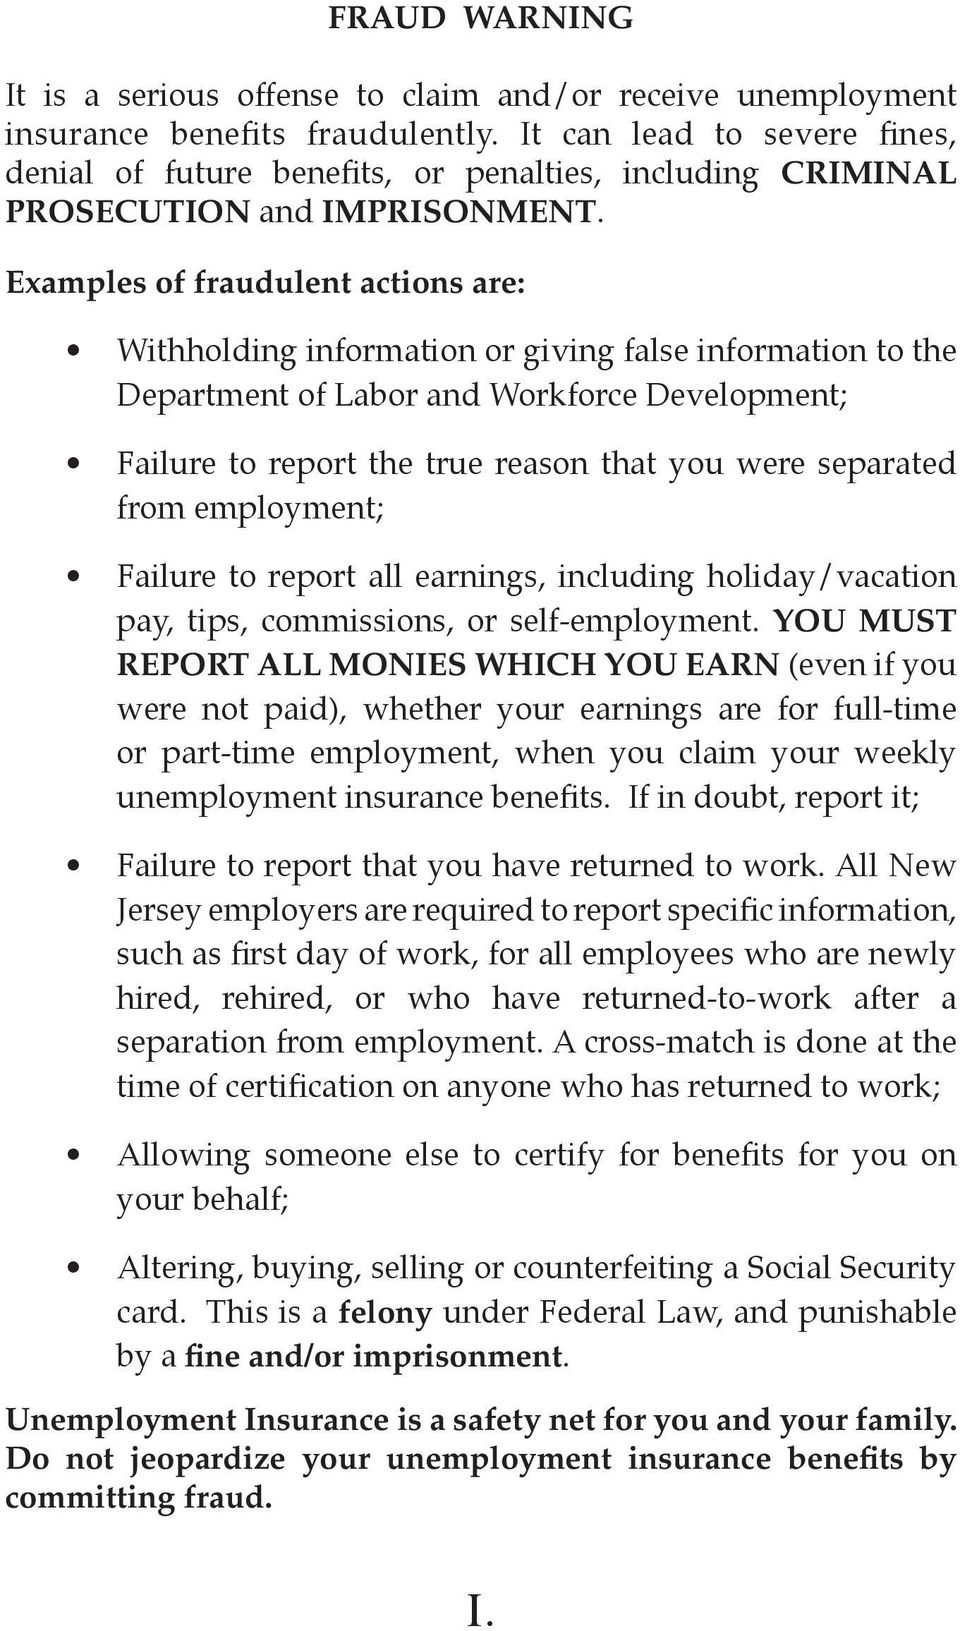 Examples of fraudulent actions are: Withholding information or giving false information to the Department of Labor and Workforce Development; Failure to report the true reason that you were separated